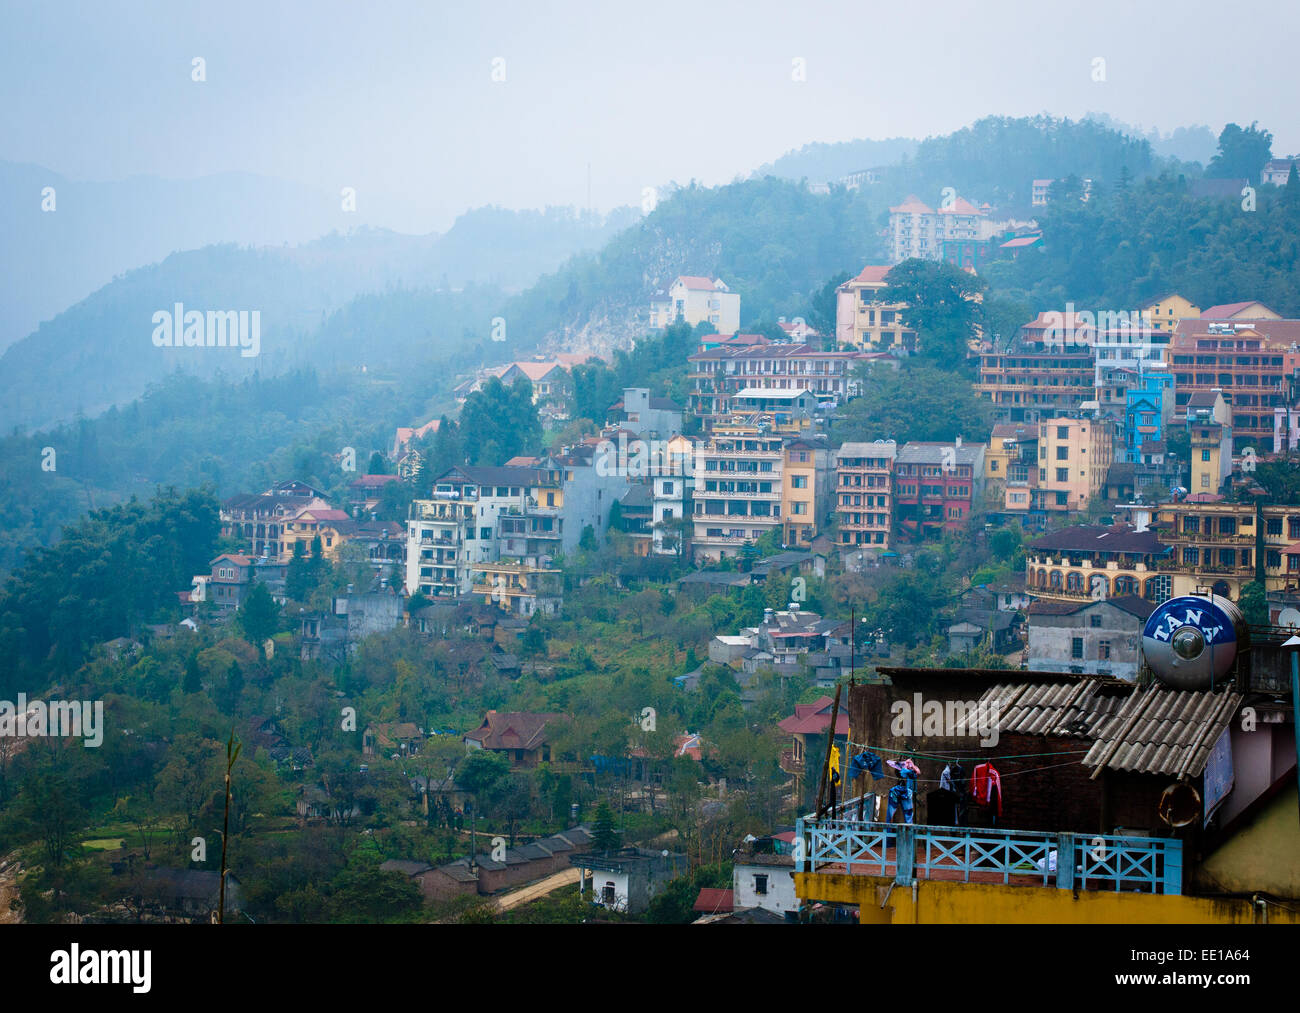 An aerial view of Sapa Town, Vietnam, on a rainy day. - Stock Image